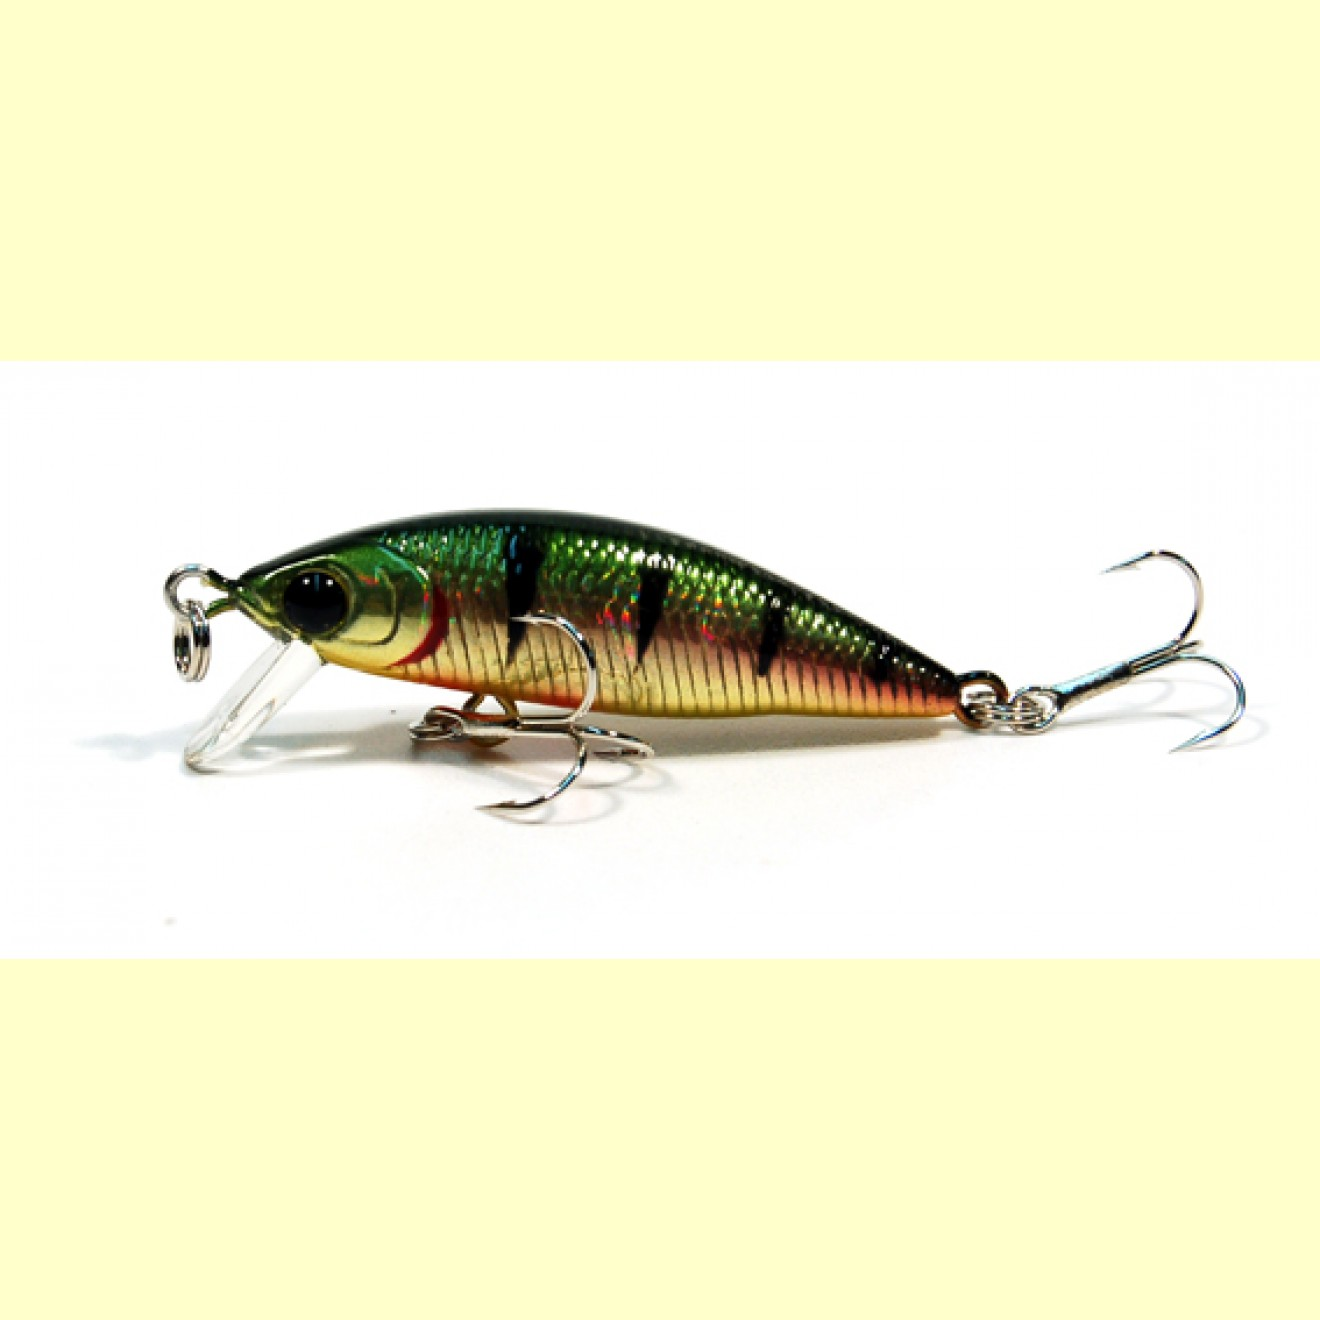 Bevy Minnow 40 SP - AGO Northern Perch - LUCKY CRAFT